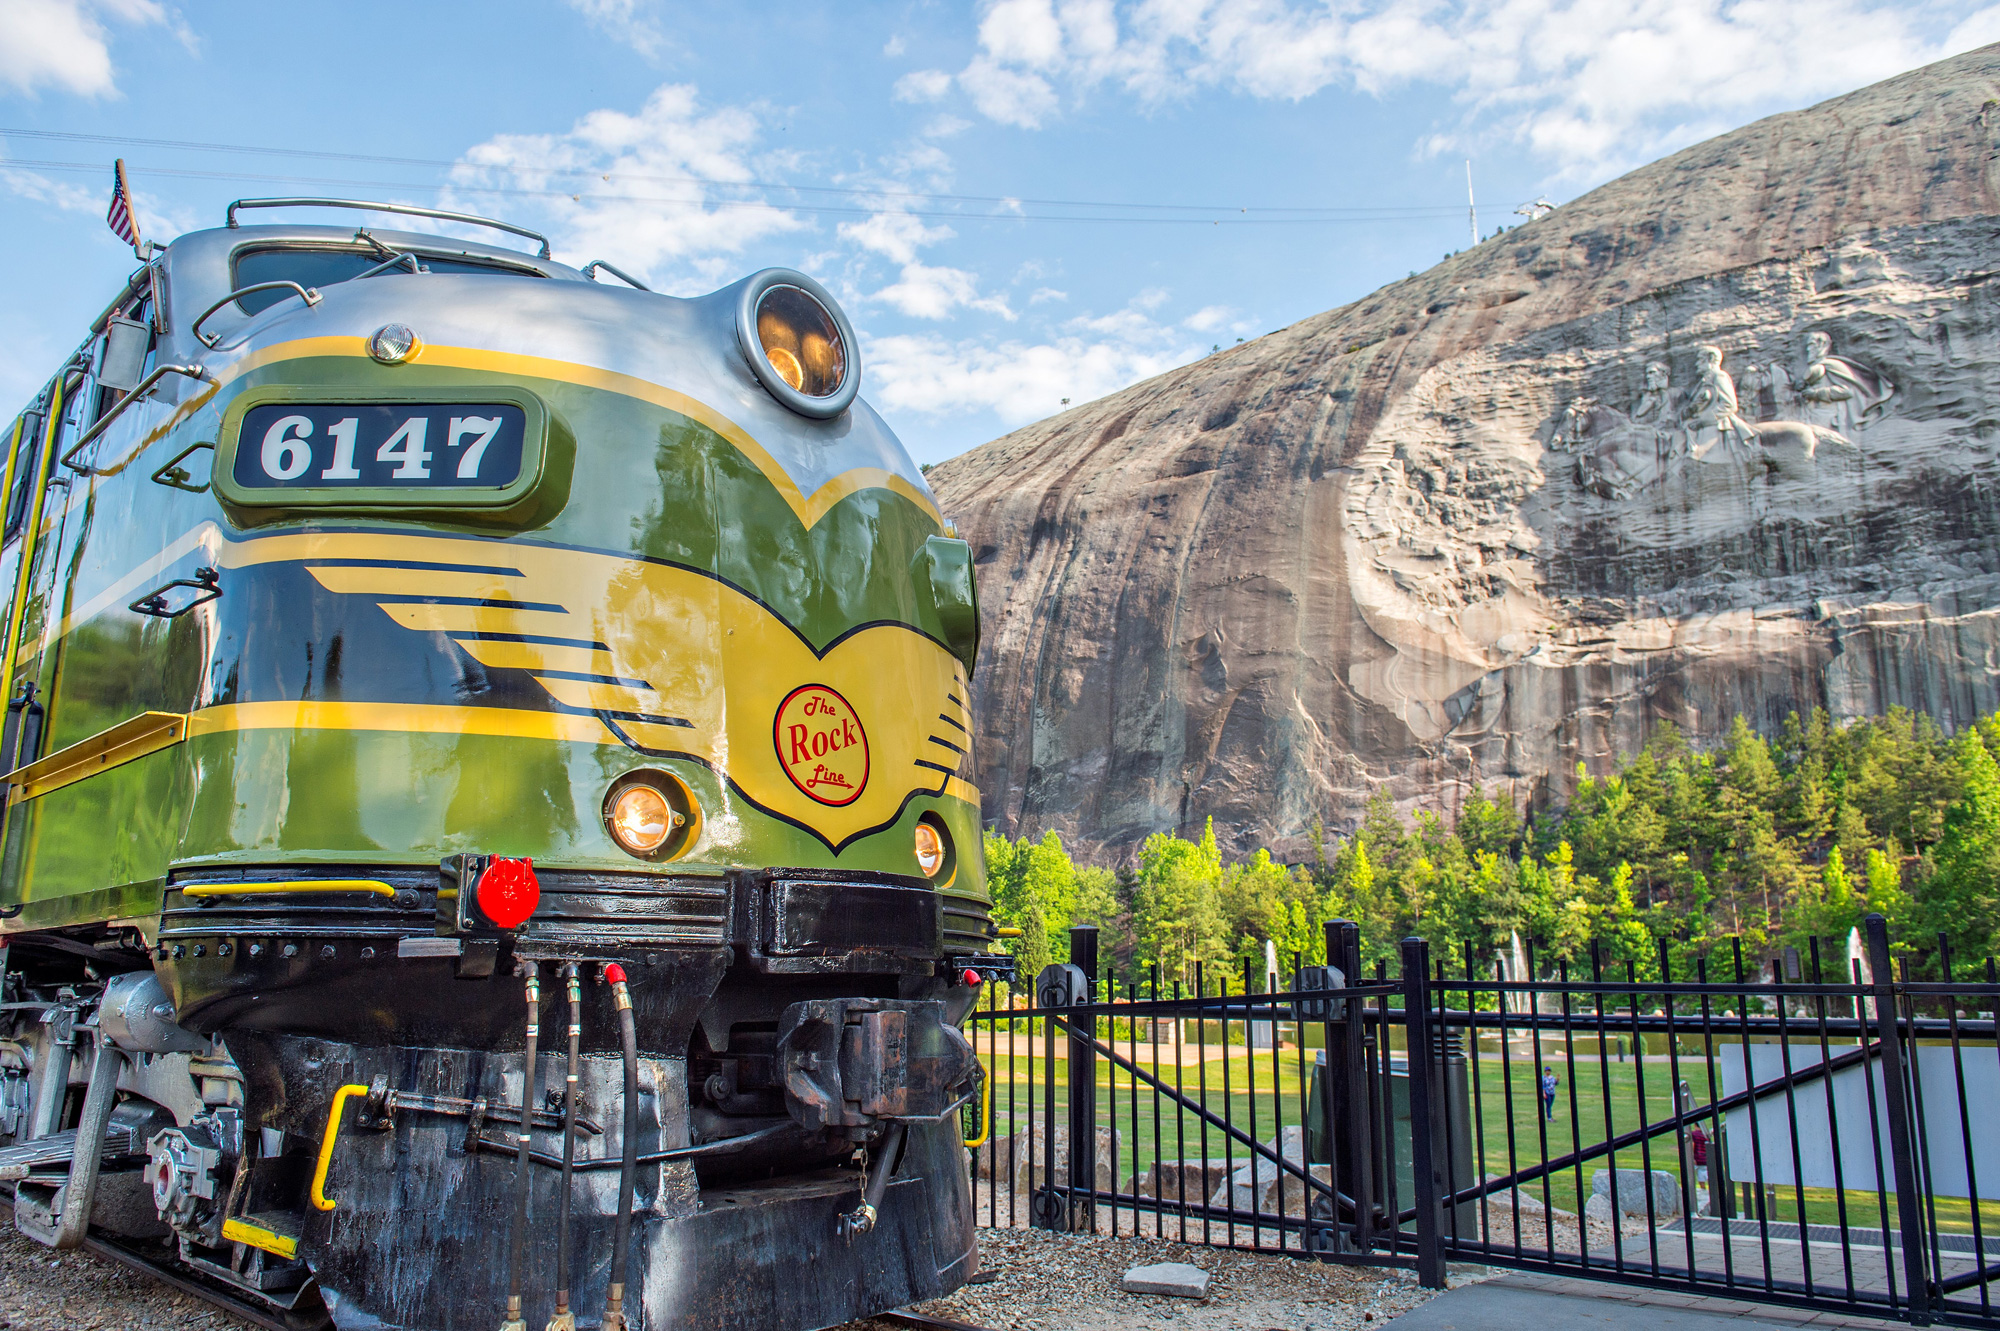 stone-mountain-train-1502386931.jpg